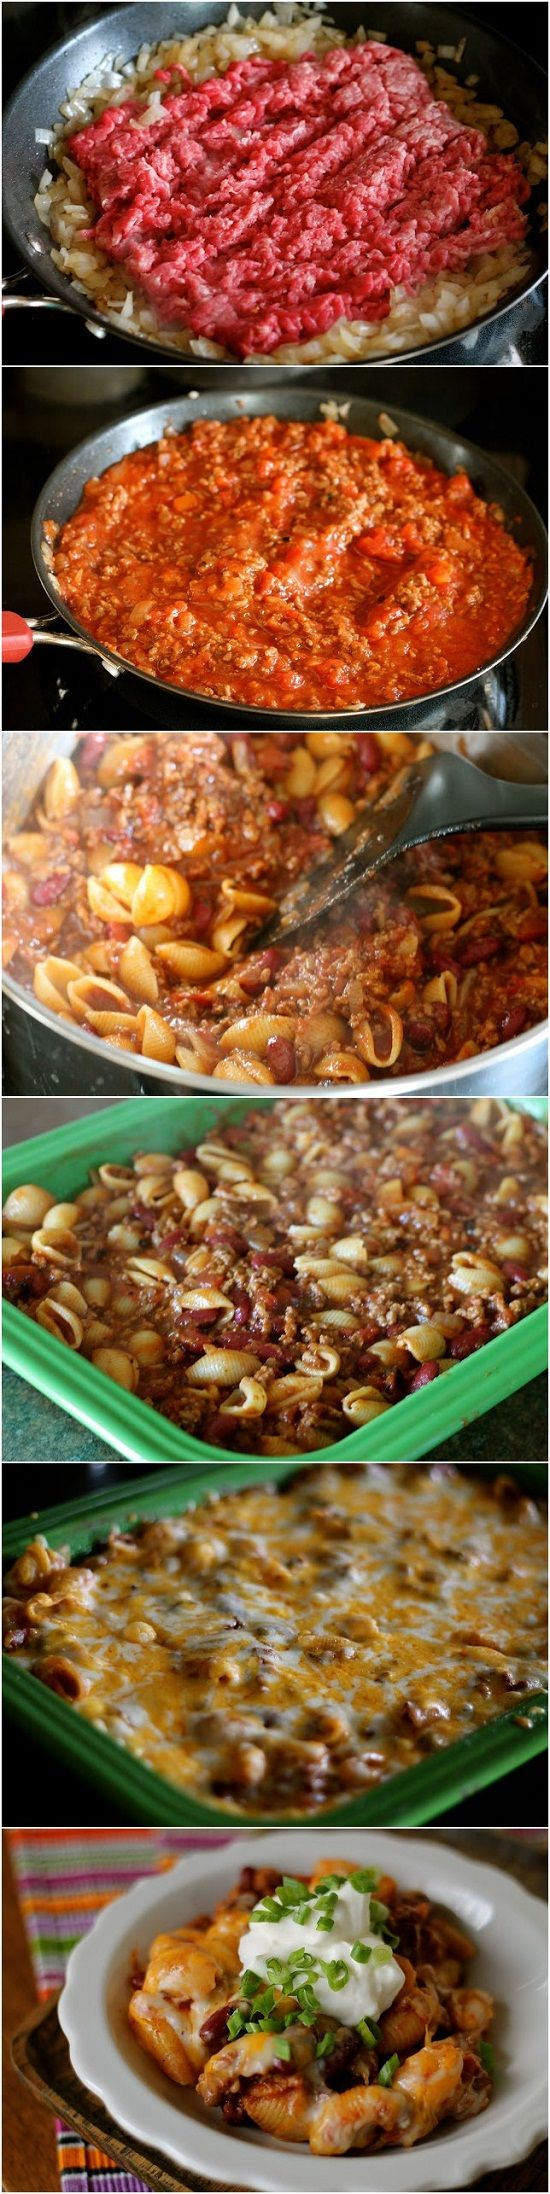 Chili Pasta Bake Recipe